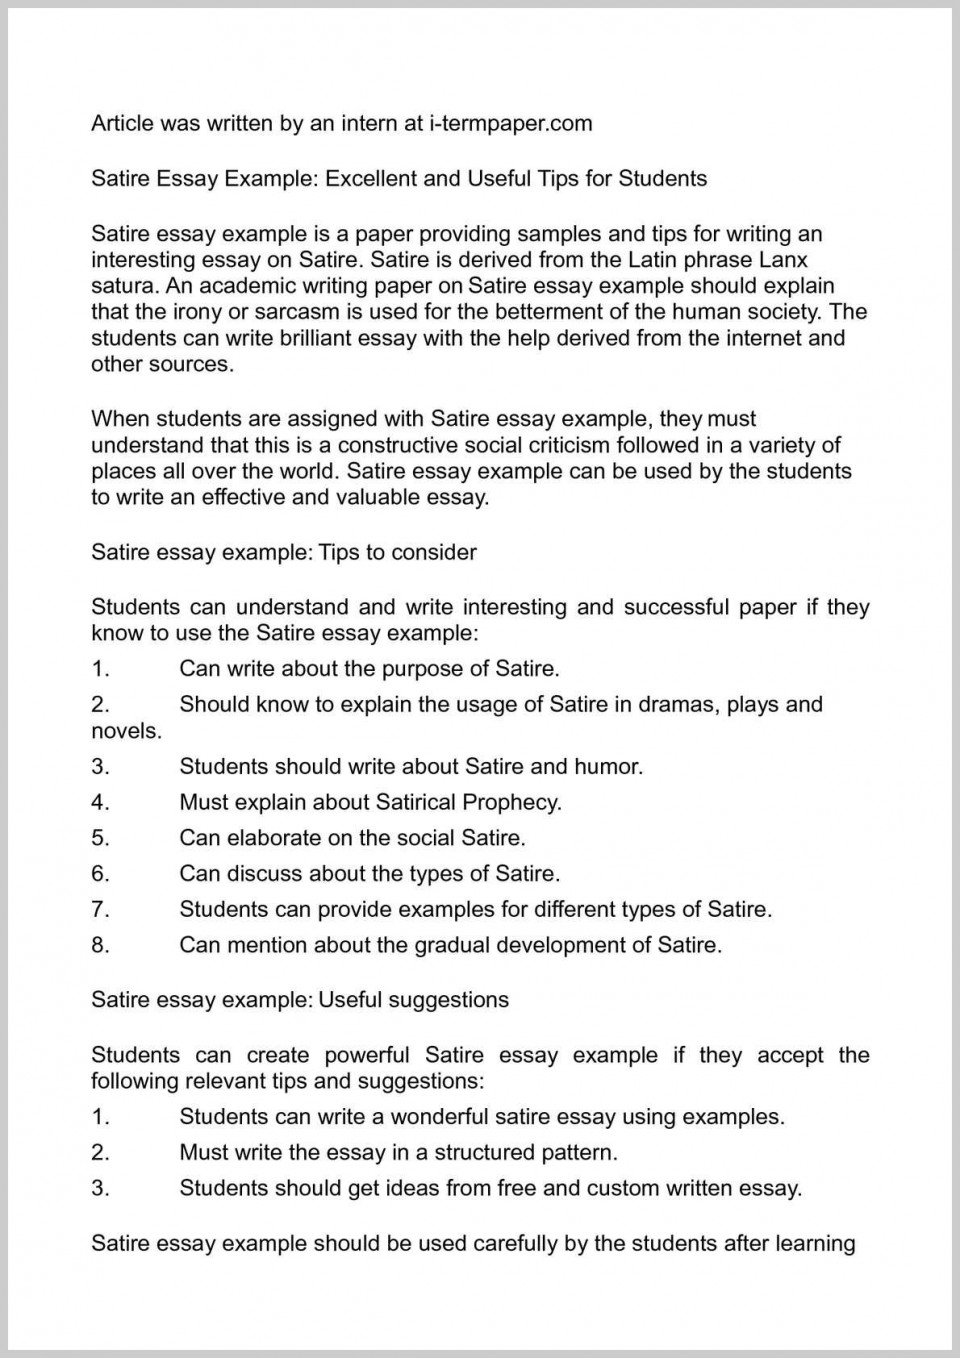 014 Essay Satiric Negative Impacts Of Social Media The Best Writing Satirical Topics Frightening Good Topic Ideas 960